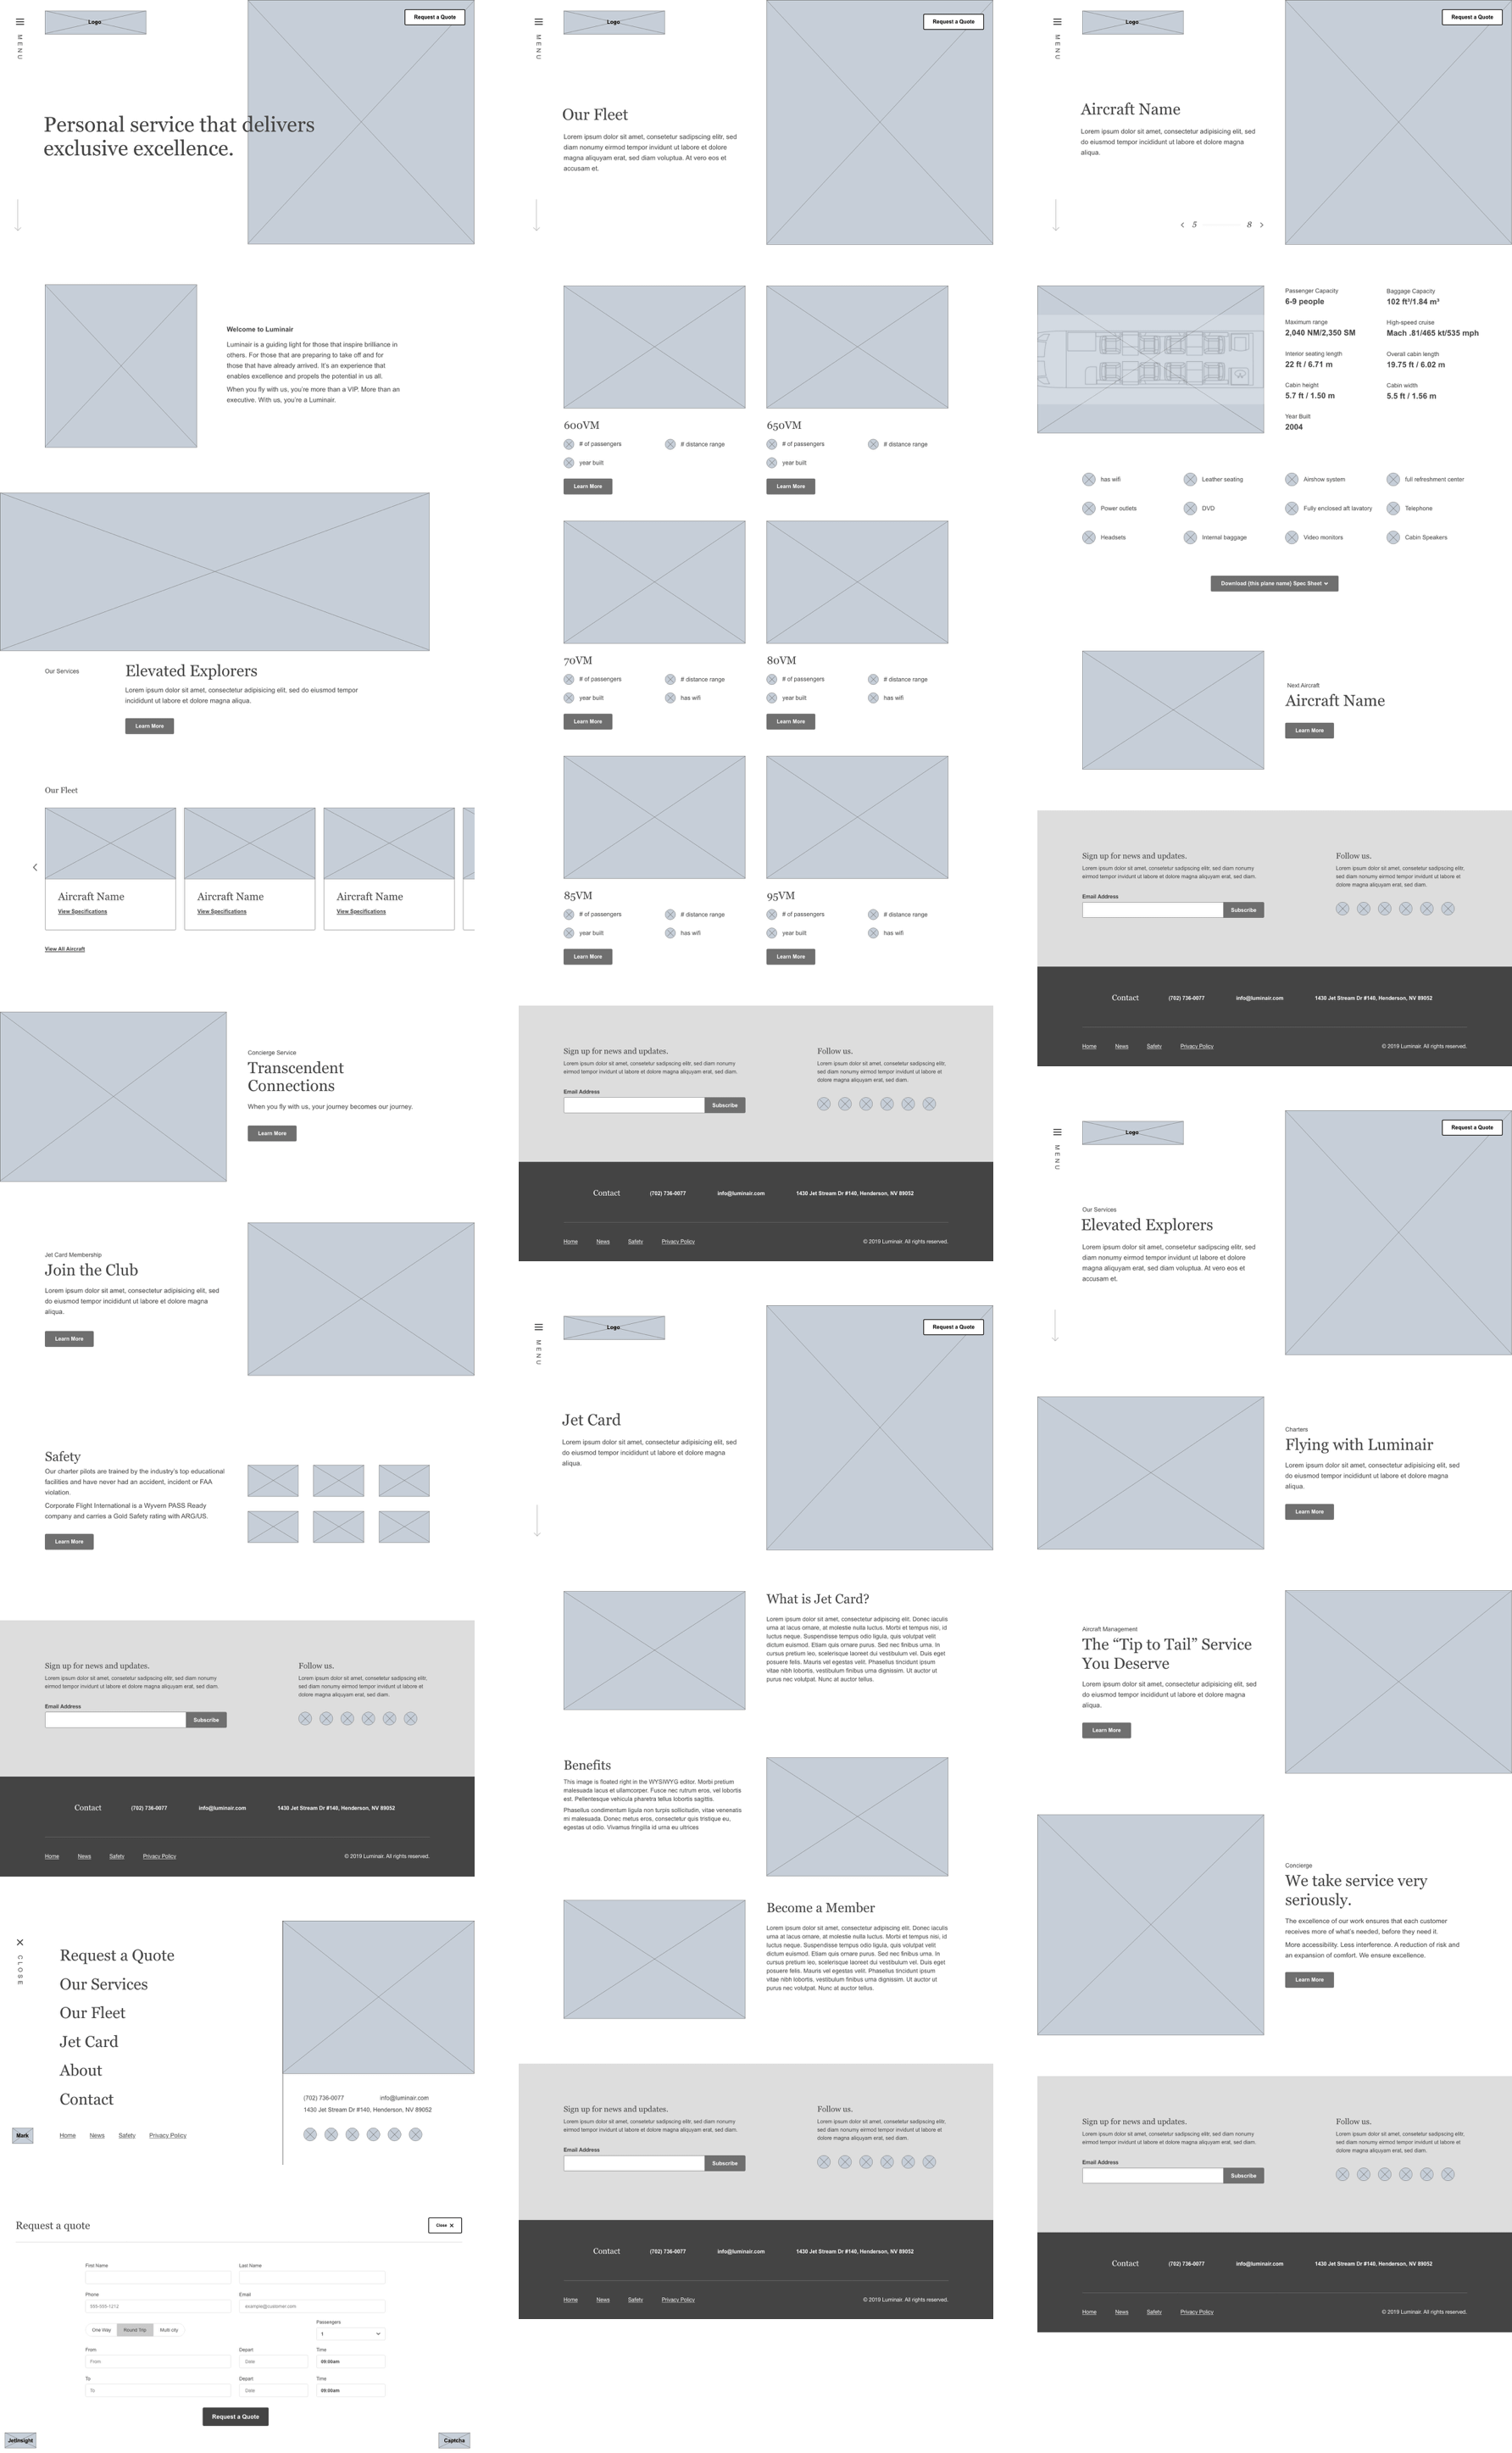 High fidelity desktop wireframes